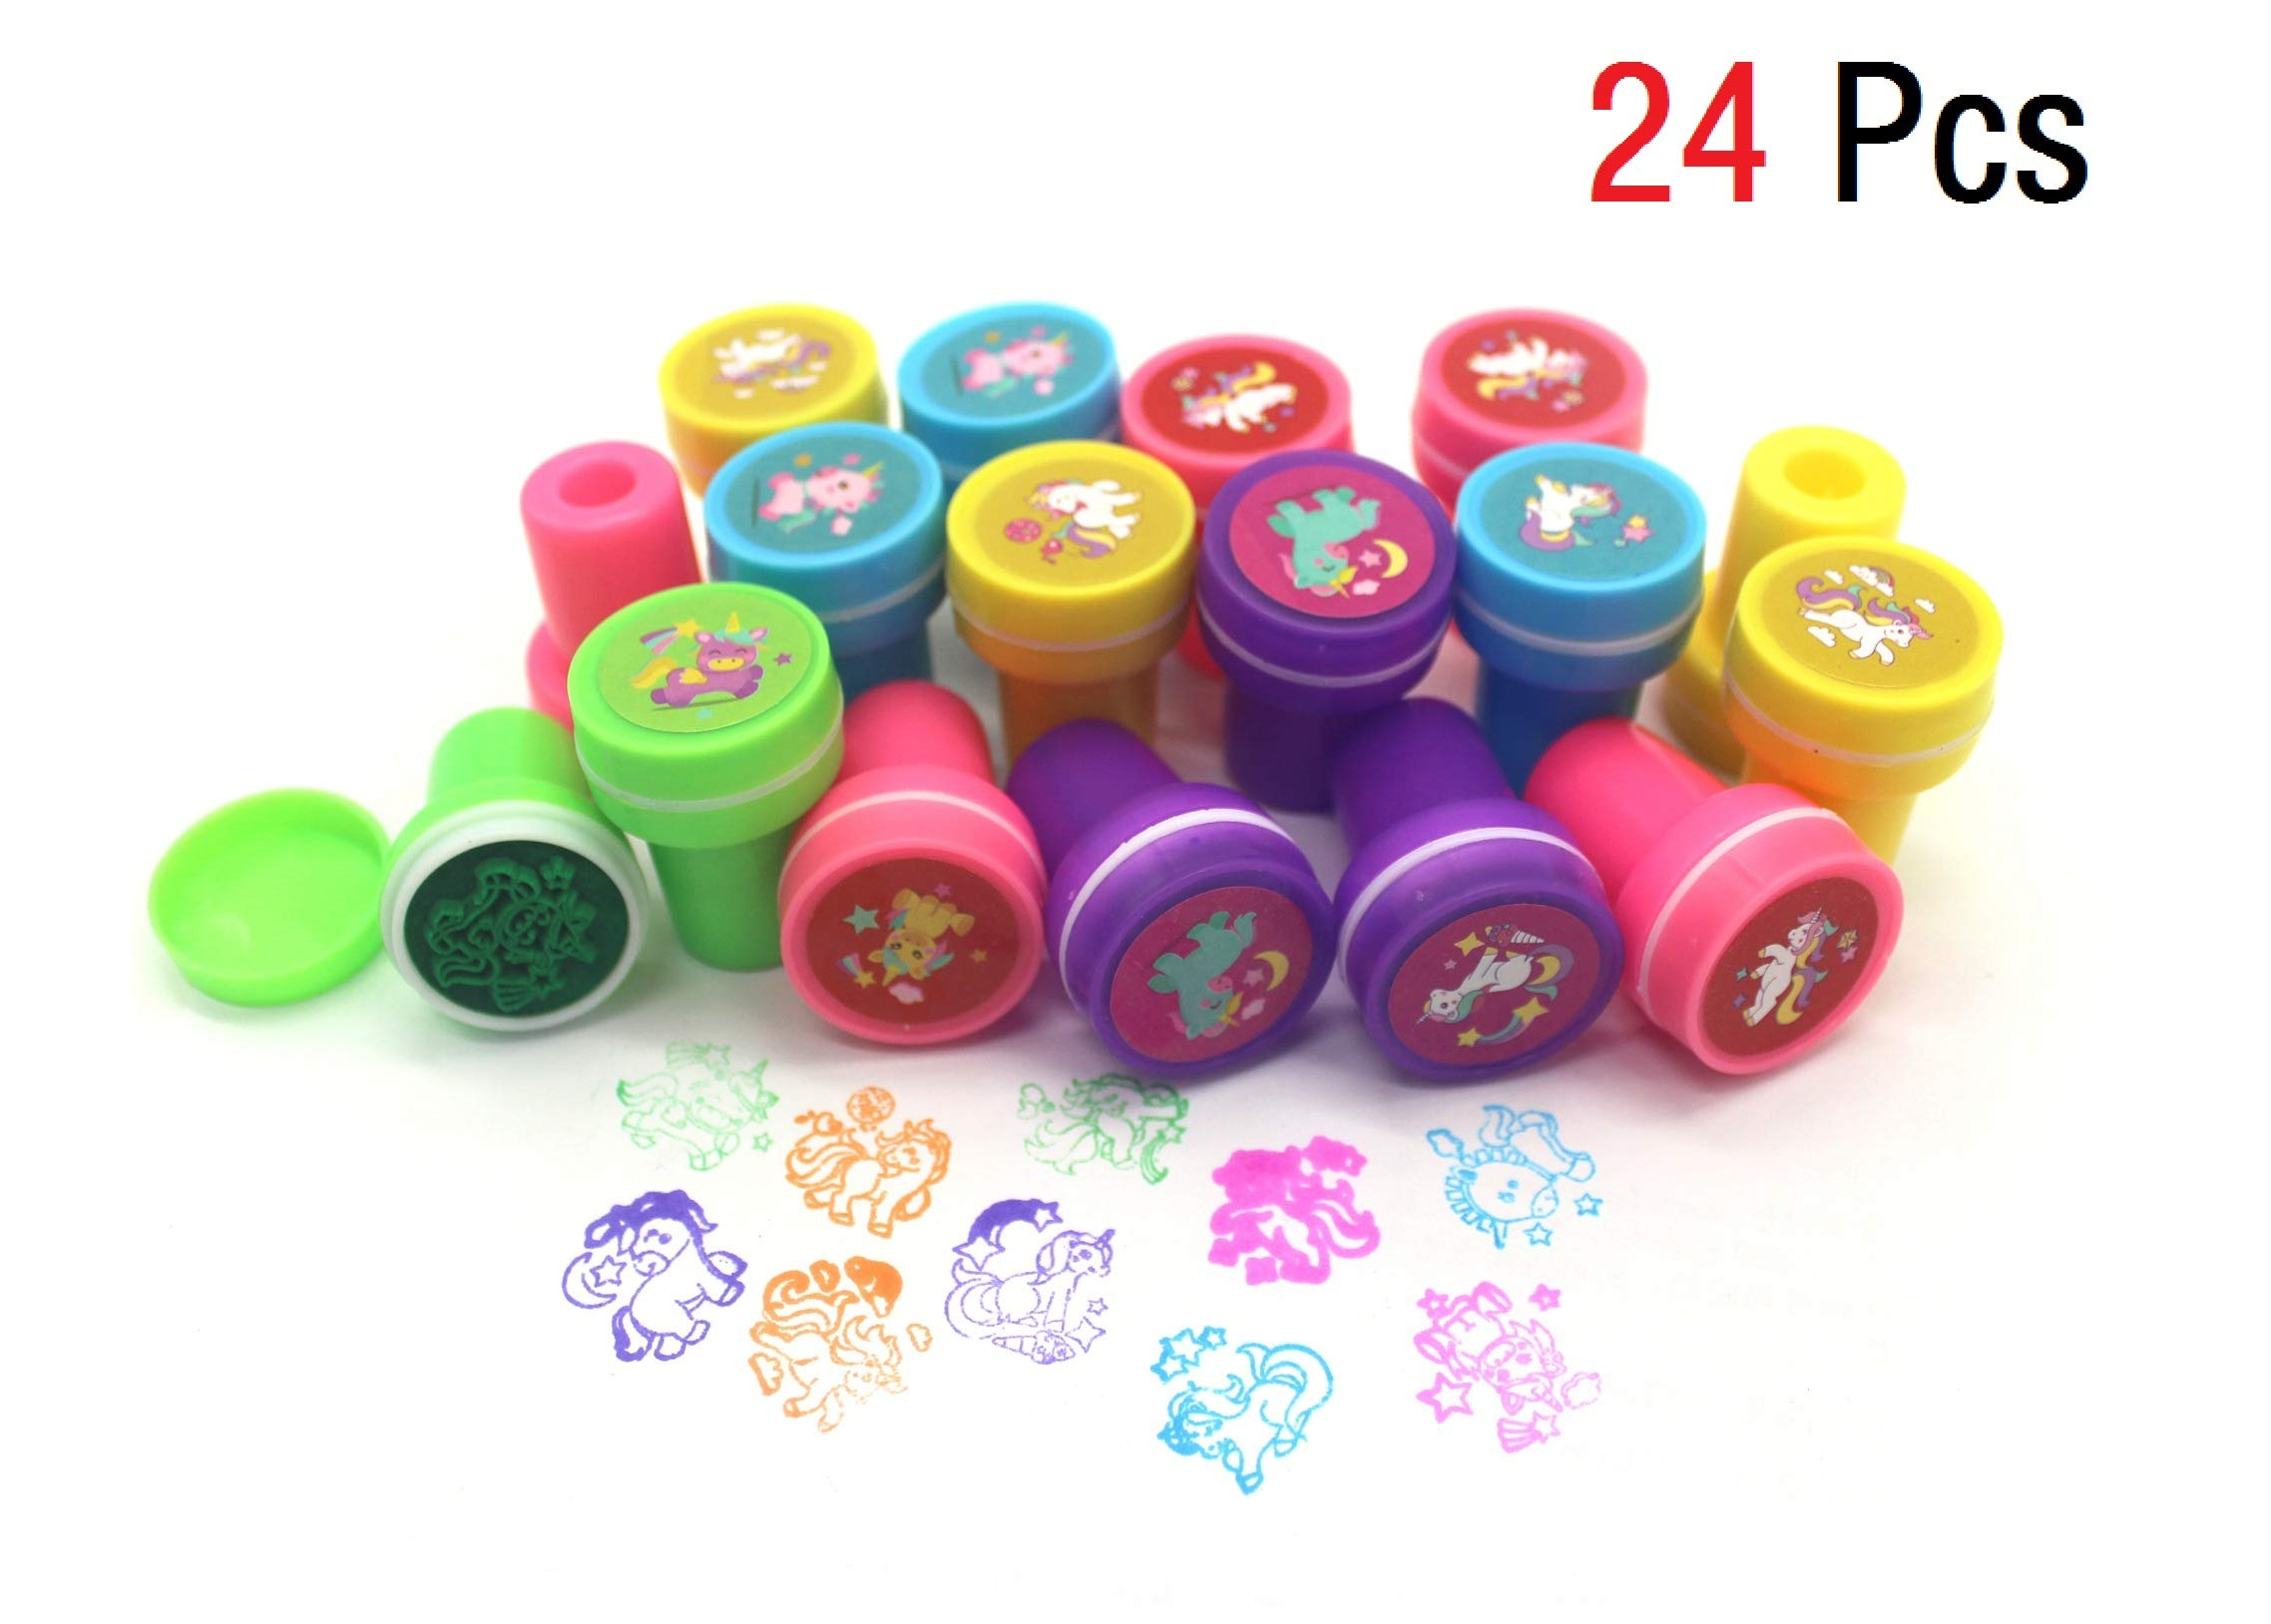 Unicorn Theme Party Favor For Kids-96Pcs Unicorn Tatoo-24Pcs Unicorn Stamper-27 Pcs Unicorn Rings Necklace Keychain… 4